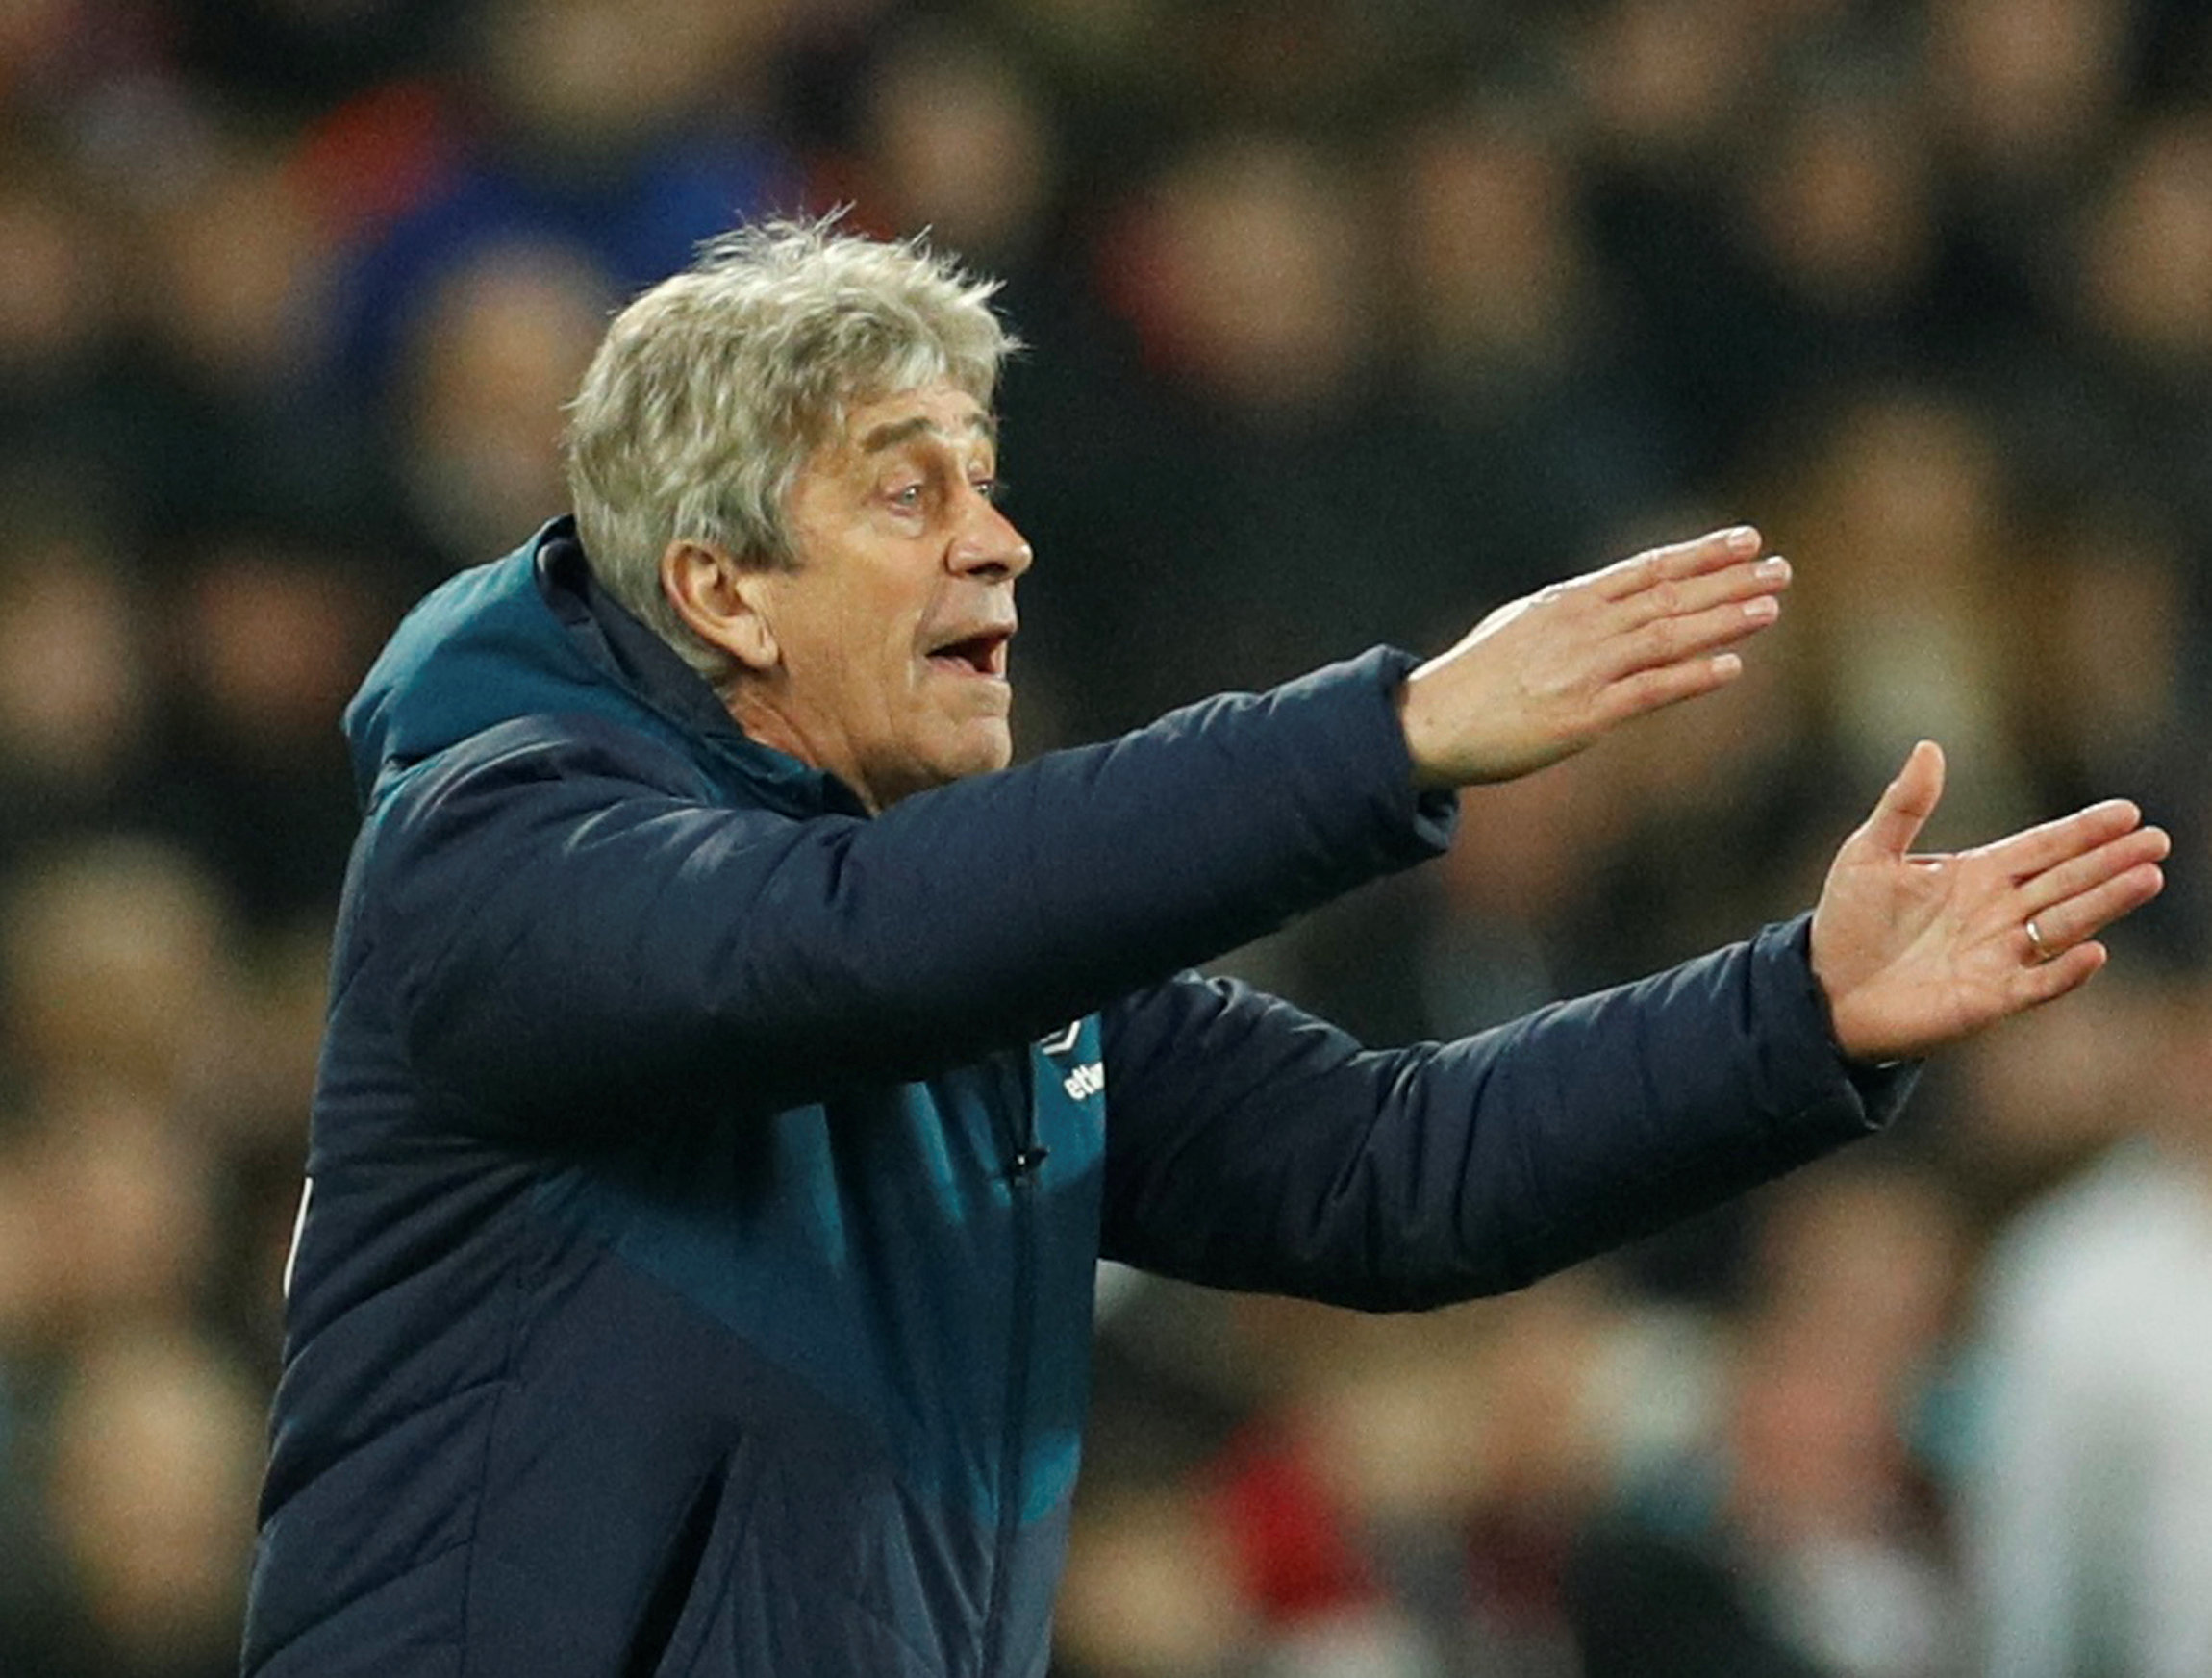 Manuel Pellegrini was frustrated by the manner of Liverpol's goal. Picture: Action Images